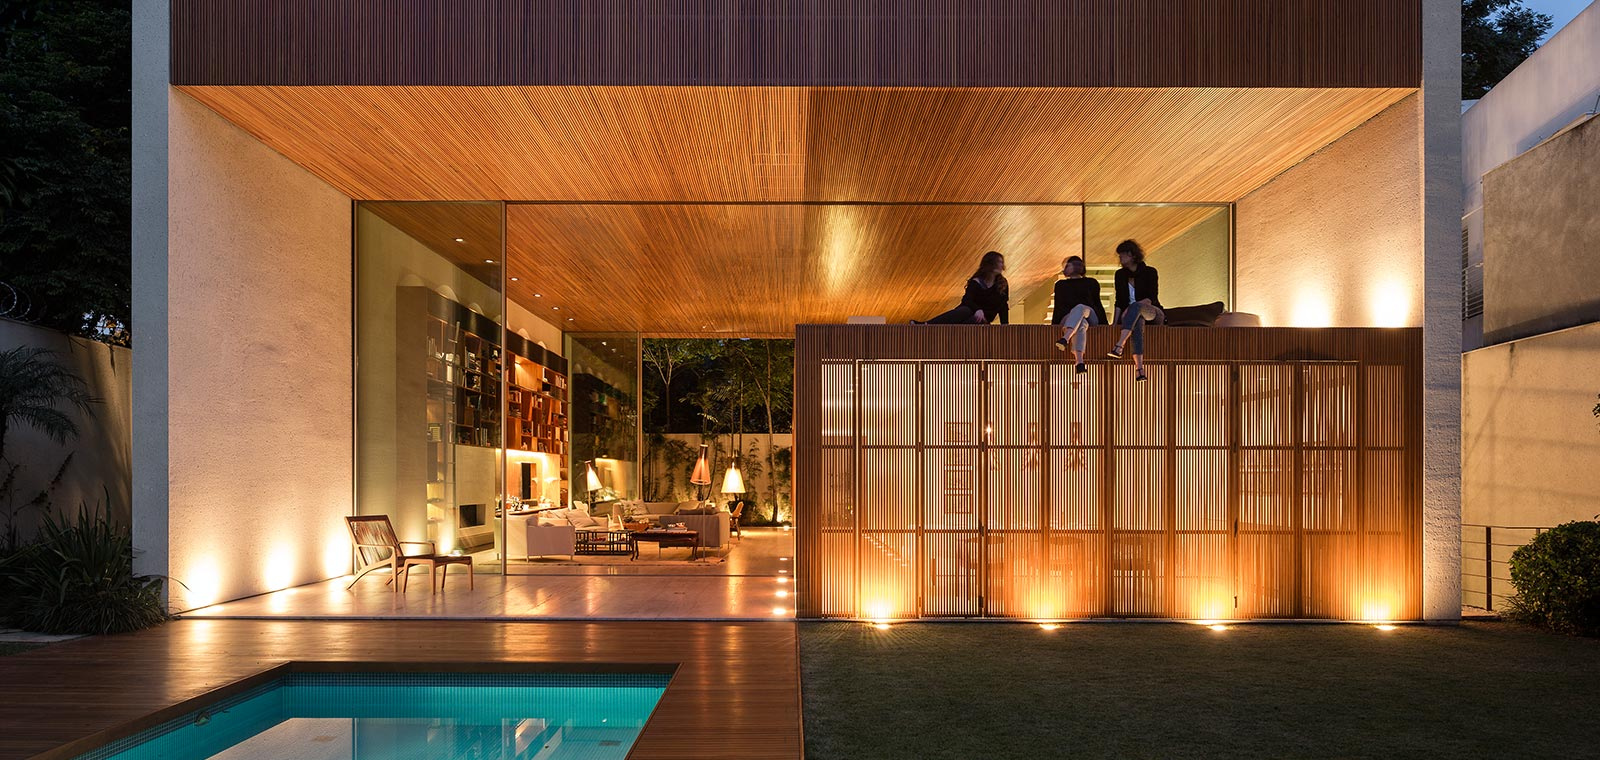 Tetris House: A modern Brazilian home organized just like the classic arcade game by Studio MK27